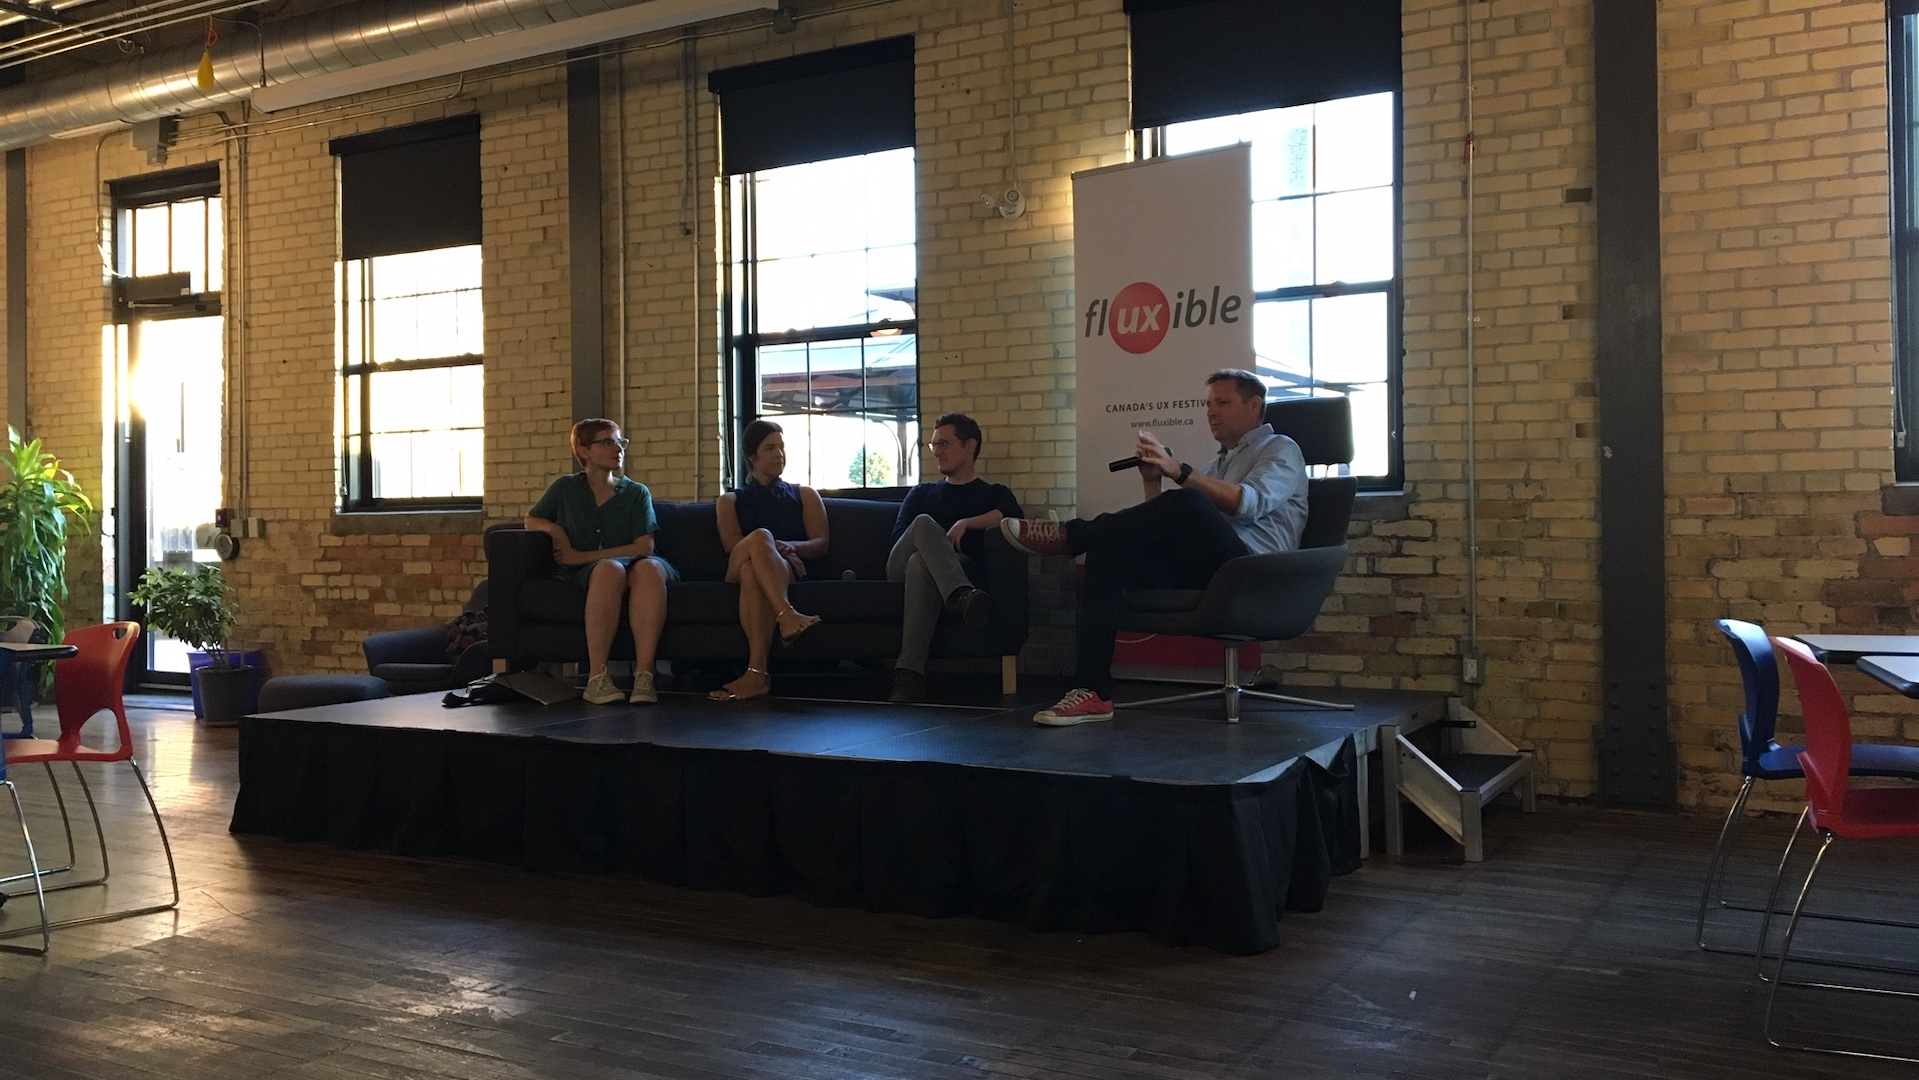 Janice de Jong (left), Davis Neable, Jeff Kraemer, and Jeff Fedor (right), address an audience at a UX career panel during Fluxible Meetup.